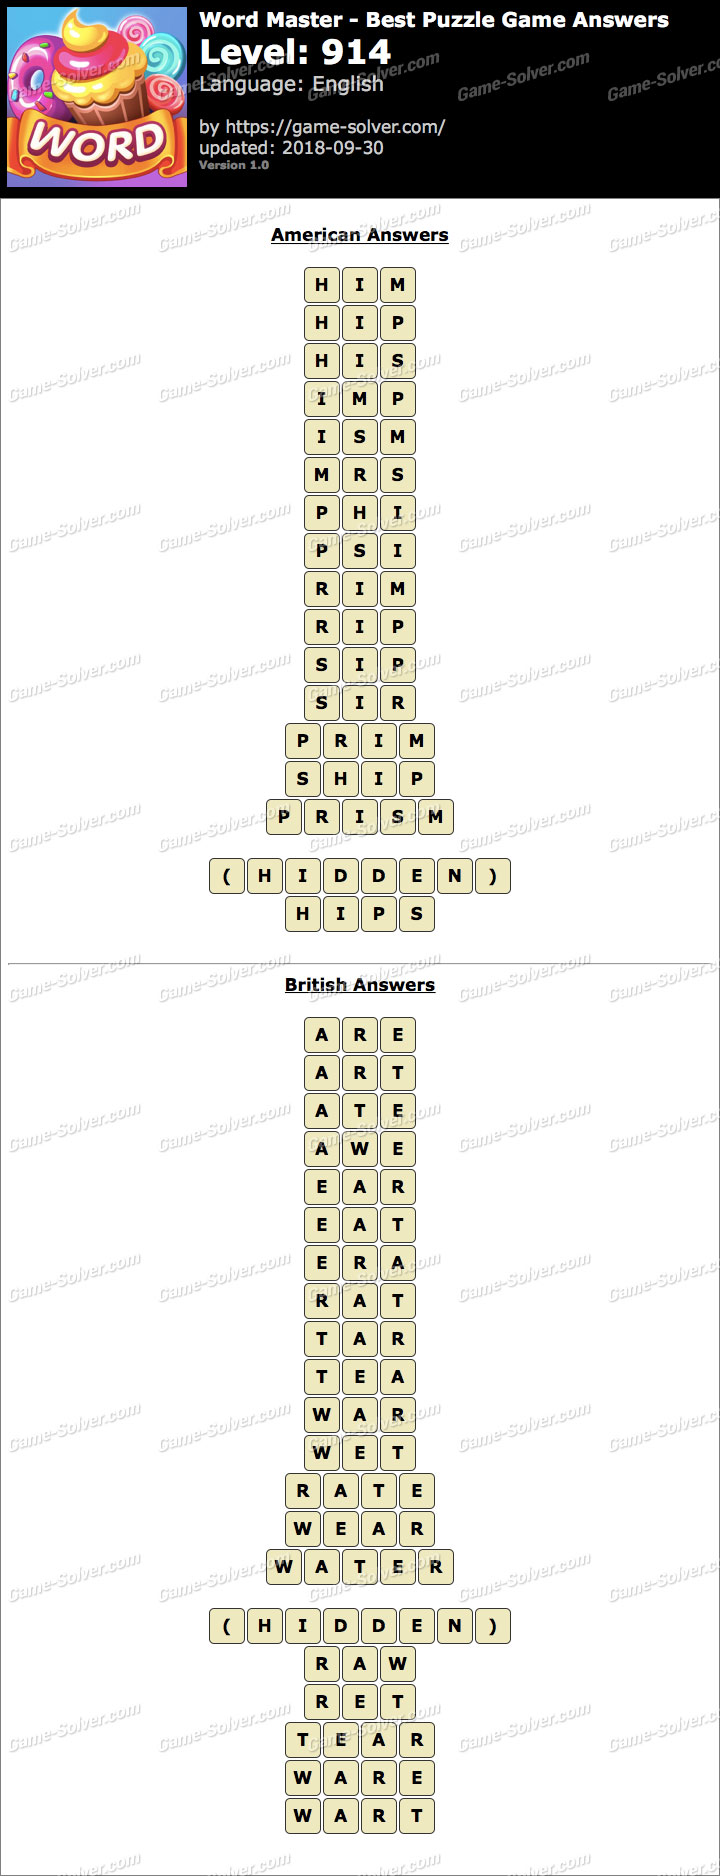 Word Master-Best Puzzle Game Level 914 Answers